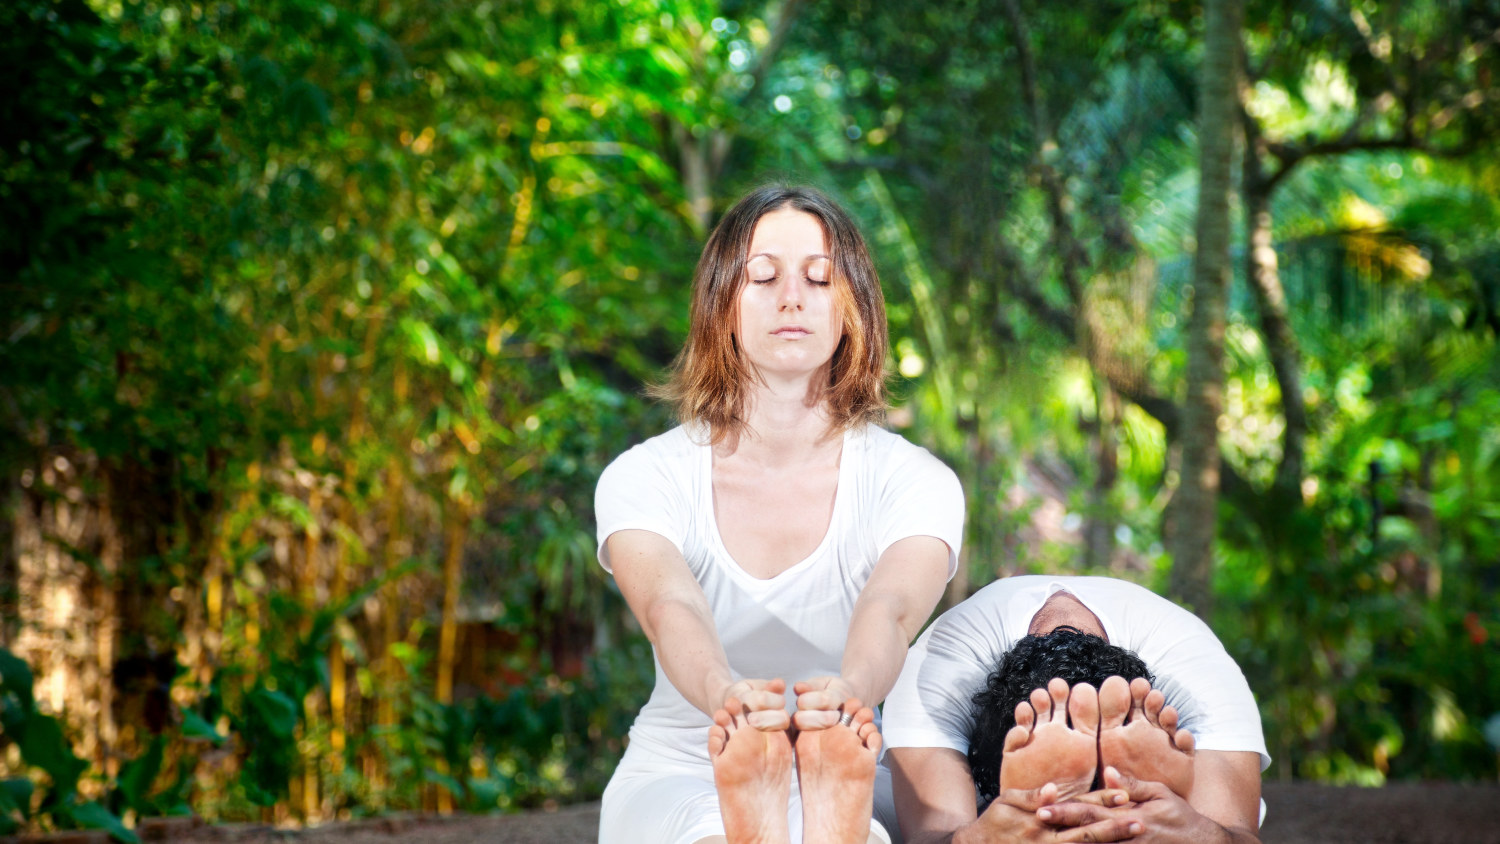 Yoga practice in nature,forest bathing and yoga, health benefits of nature on heath and well-being